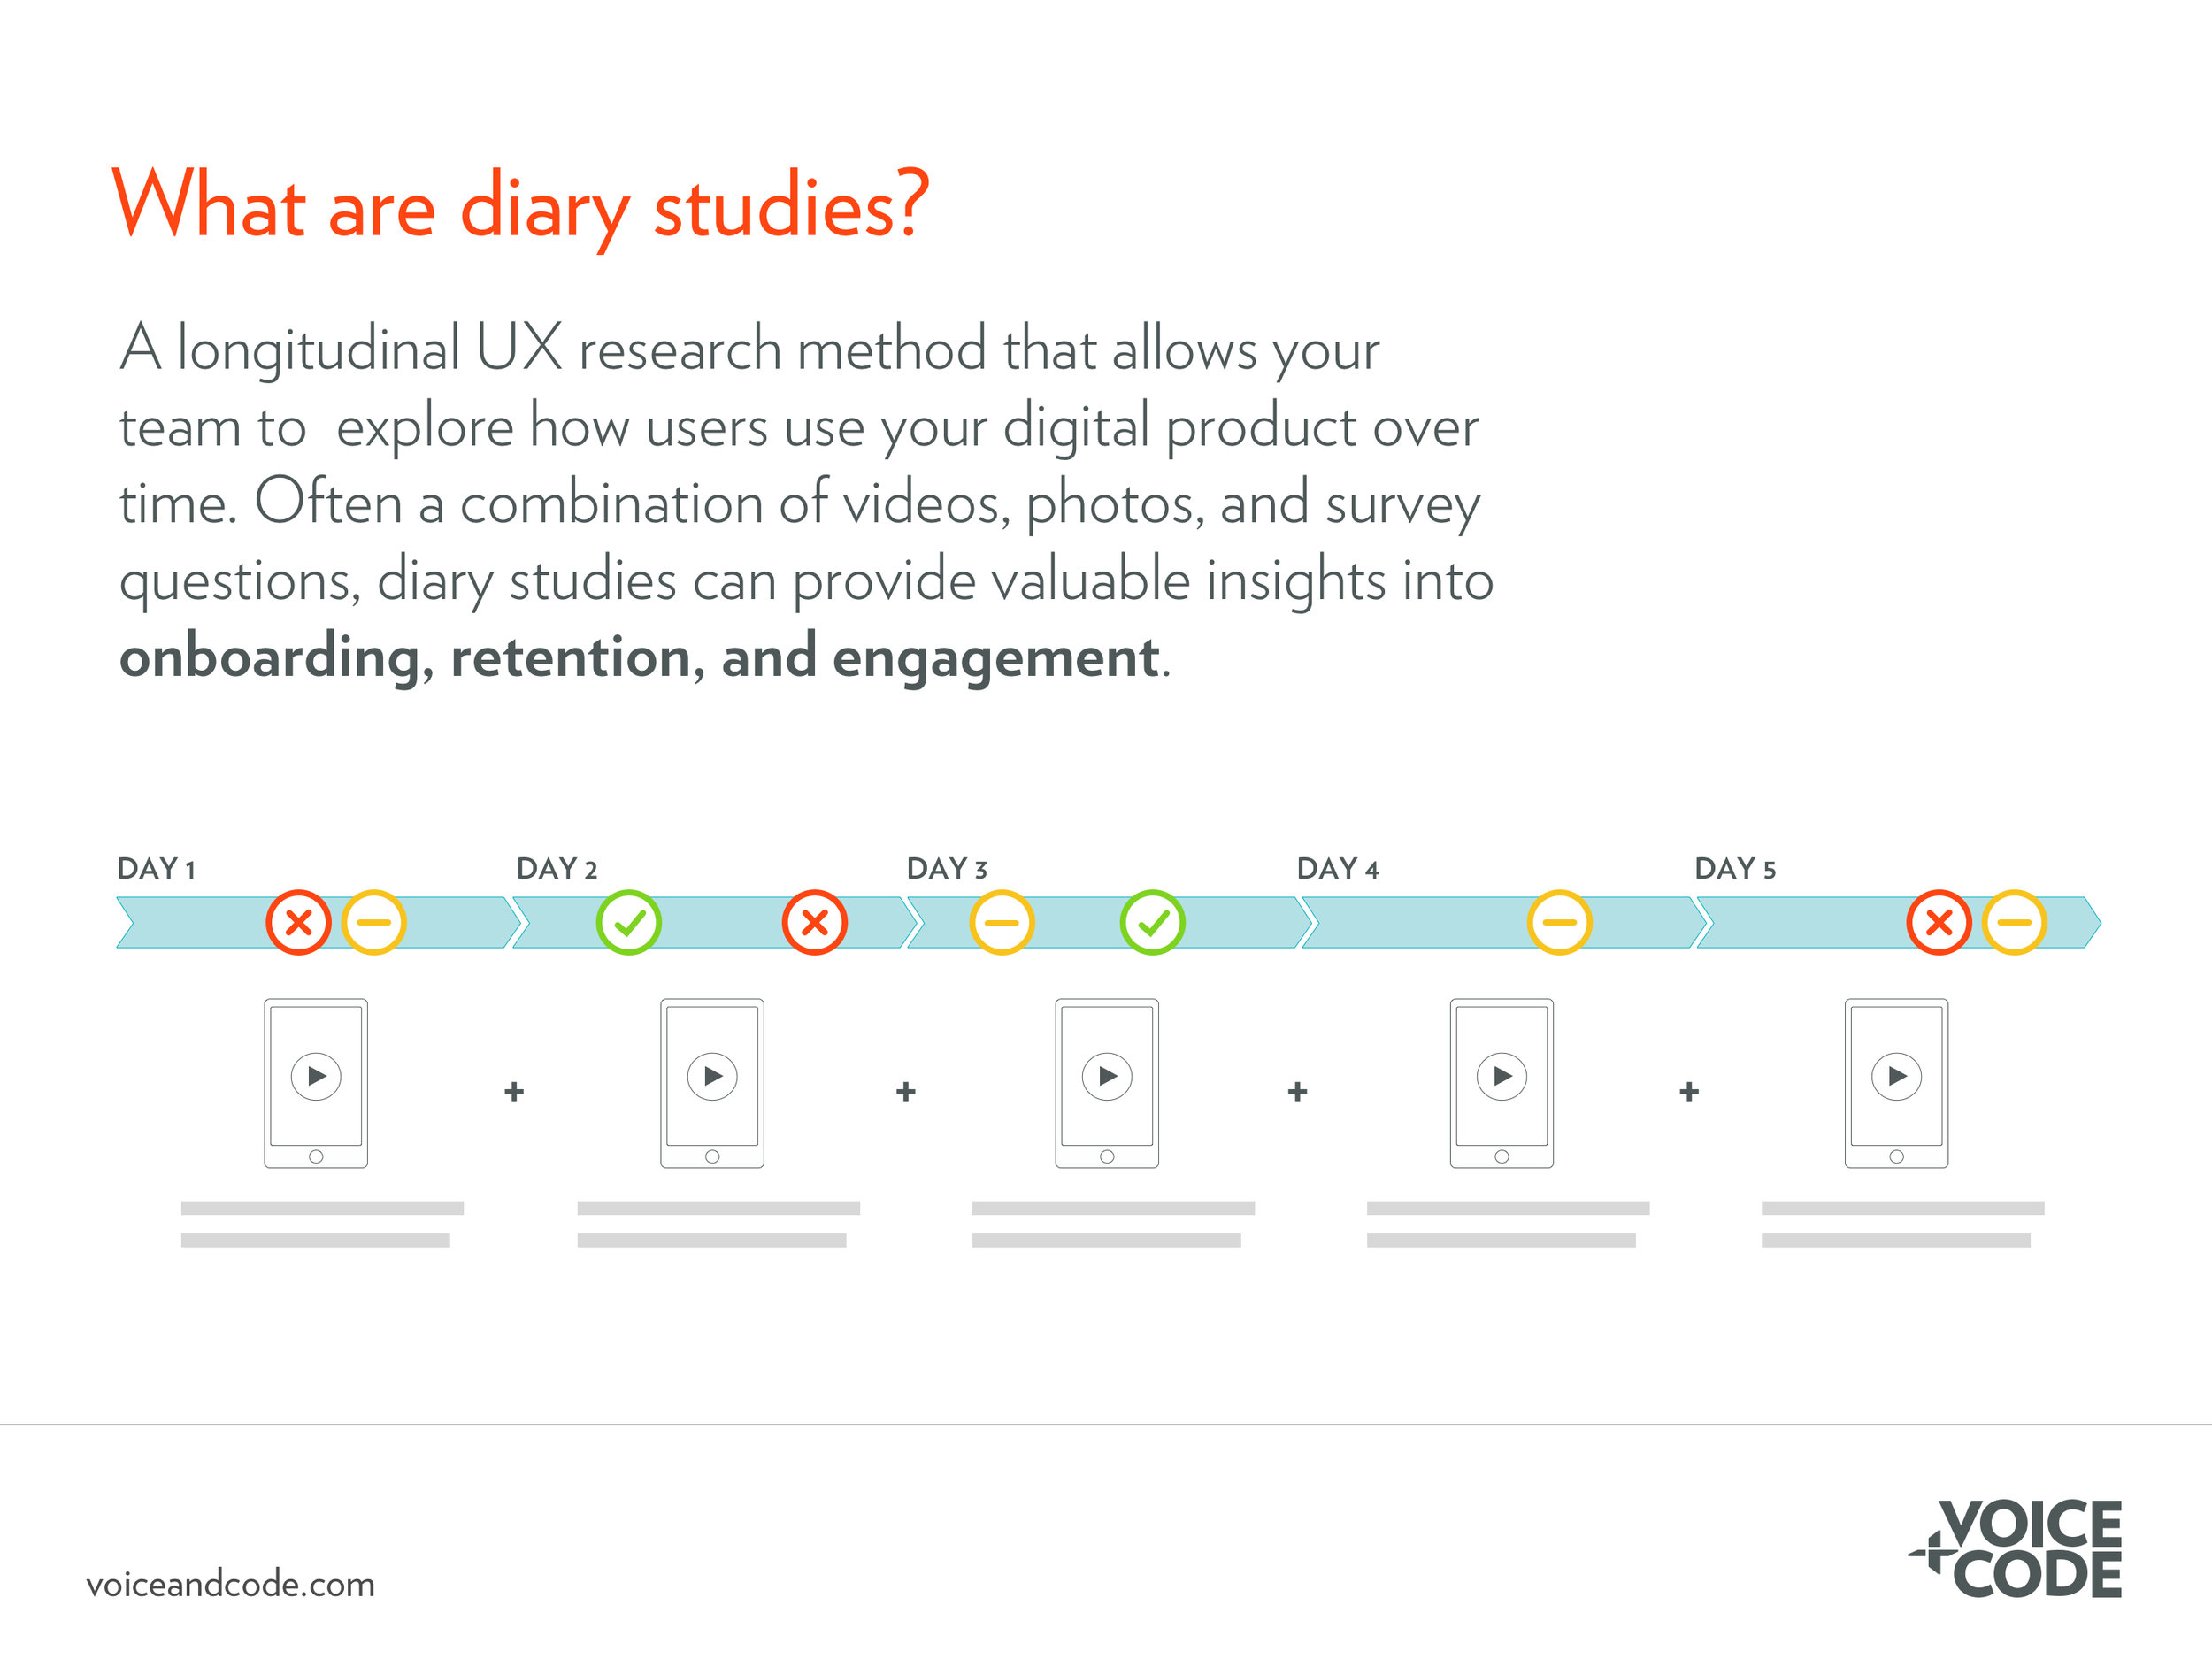 What are Diary Studies?